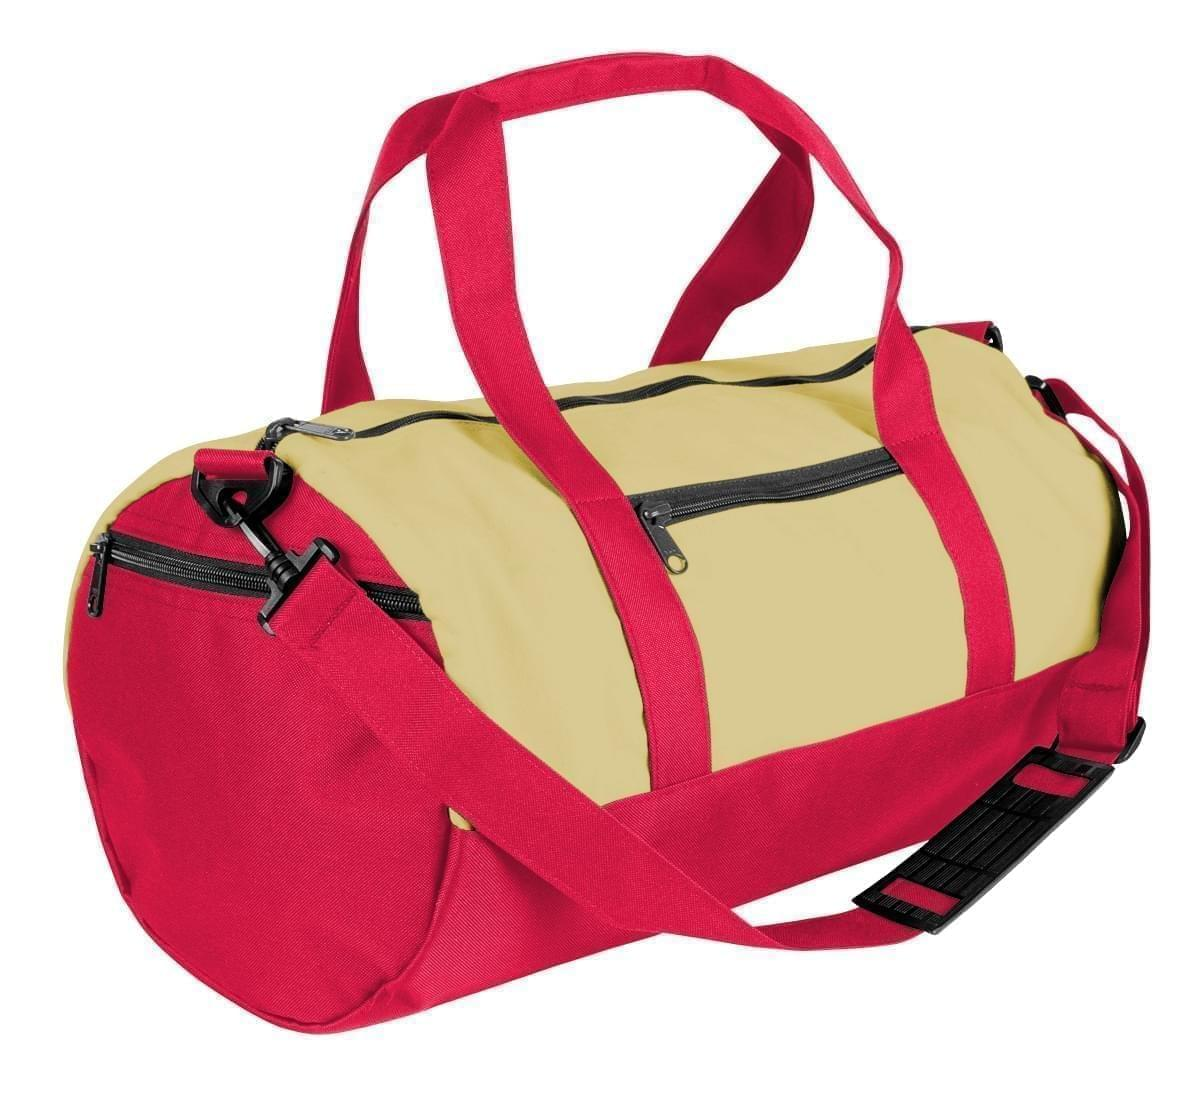 USA Made Canvas Equipment Duffle Bags, Natural-Red, PMLXZ2AAKL